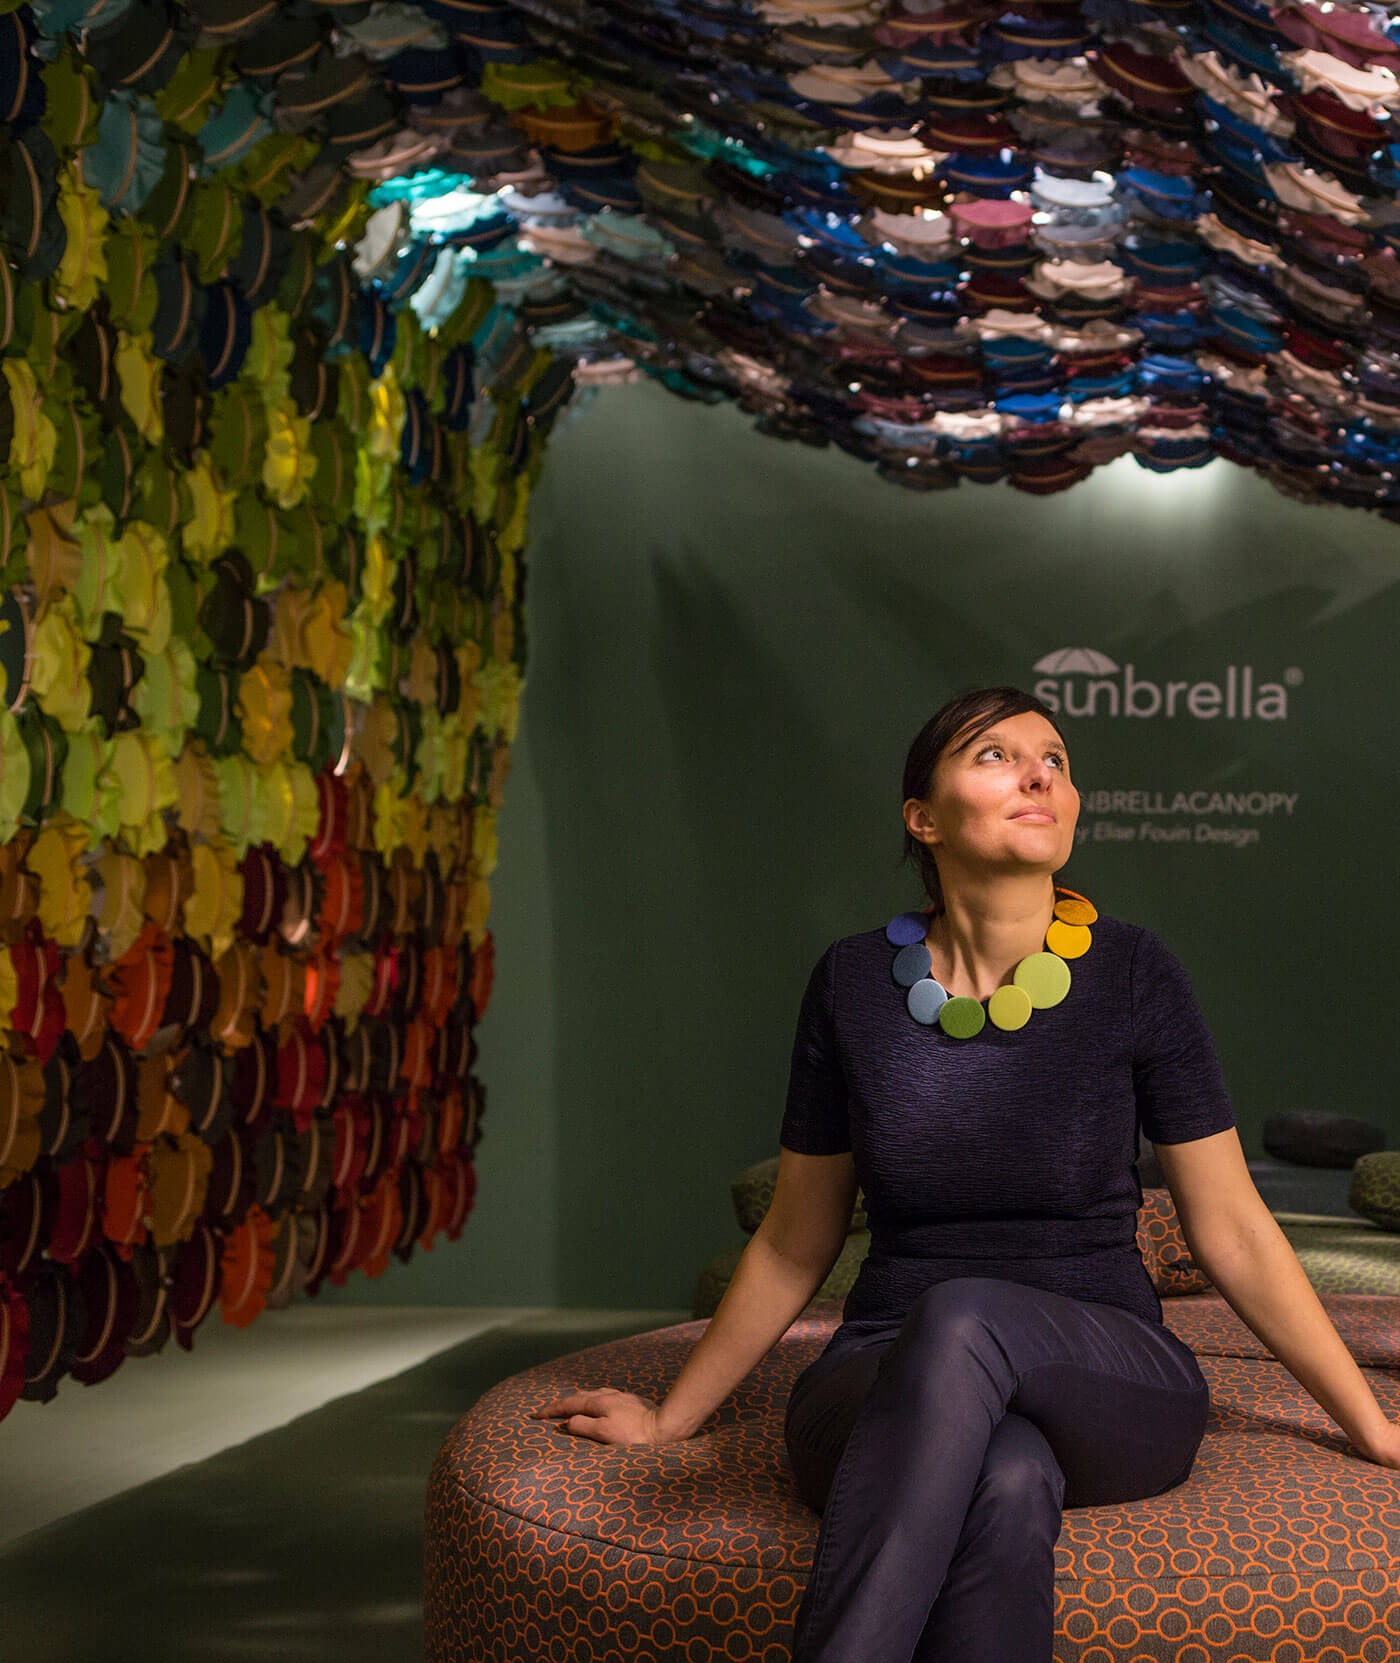 Art installation featuring bright colors of Sunbrella fabrics in interlocking embroidery hoops